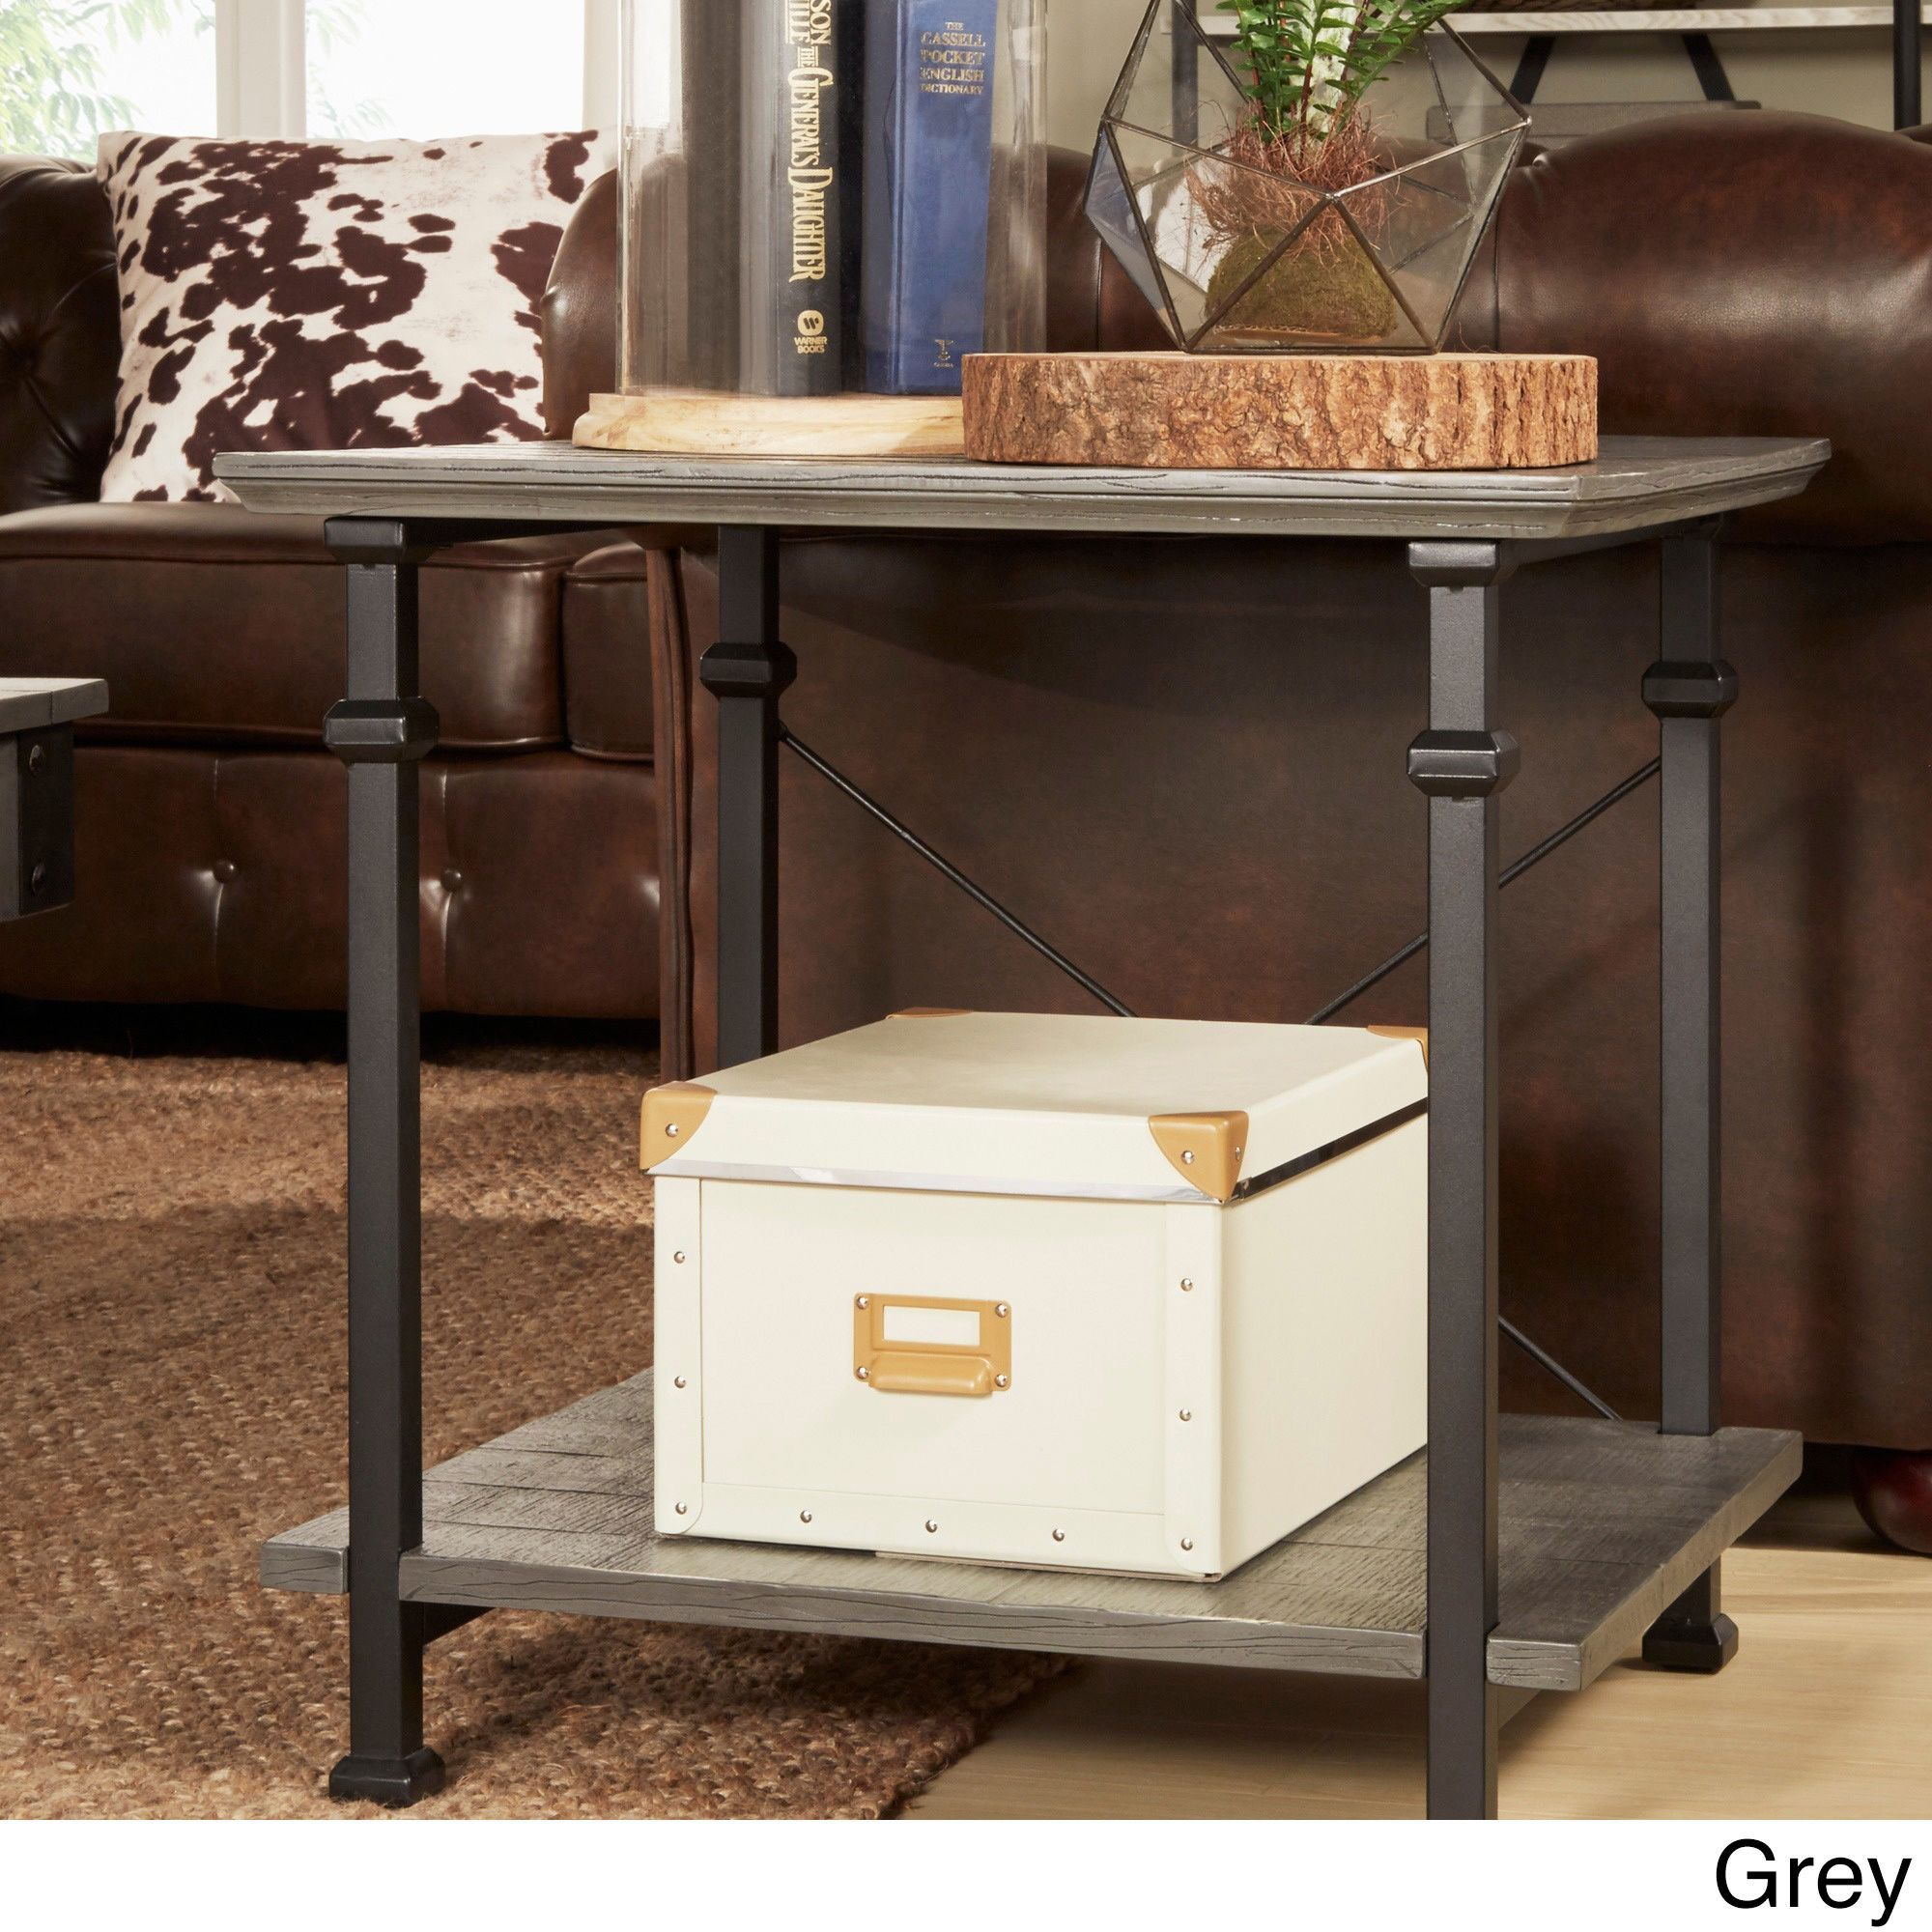 Myra Vintage Industrial Modern Rustic End Table by iNSPIRE Q Classic (